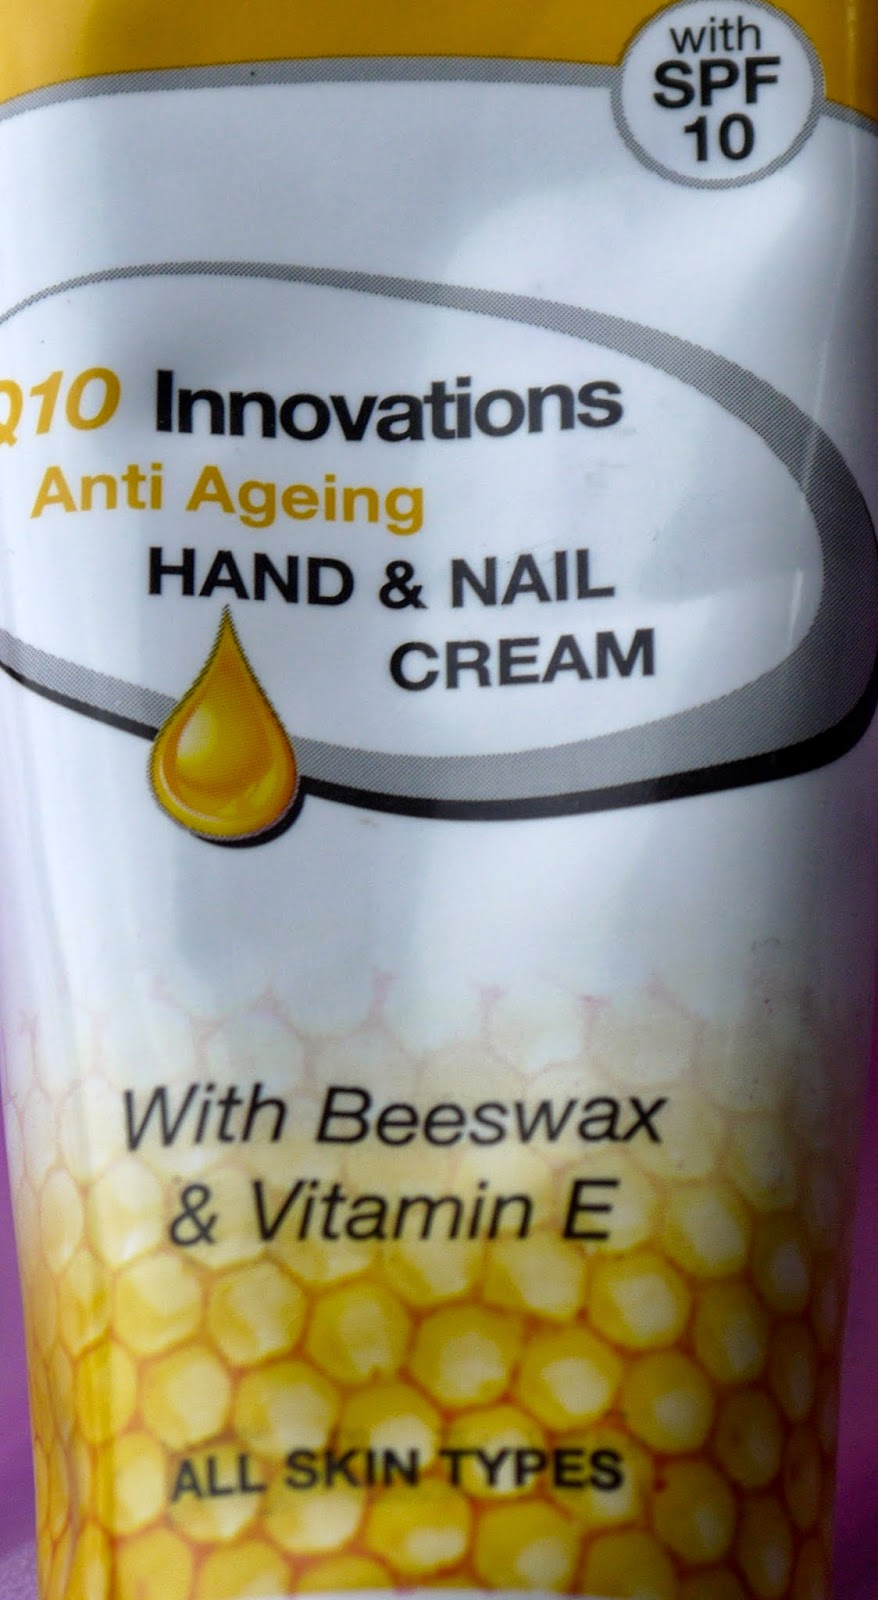 DermaV10 Hand and Nail Cream contains Beeswax, Vitamin E and SPF10